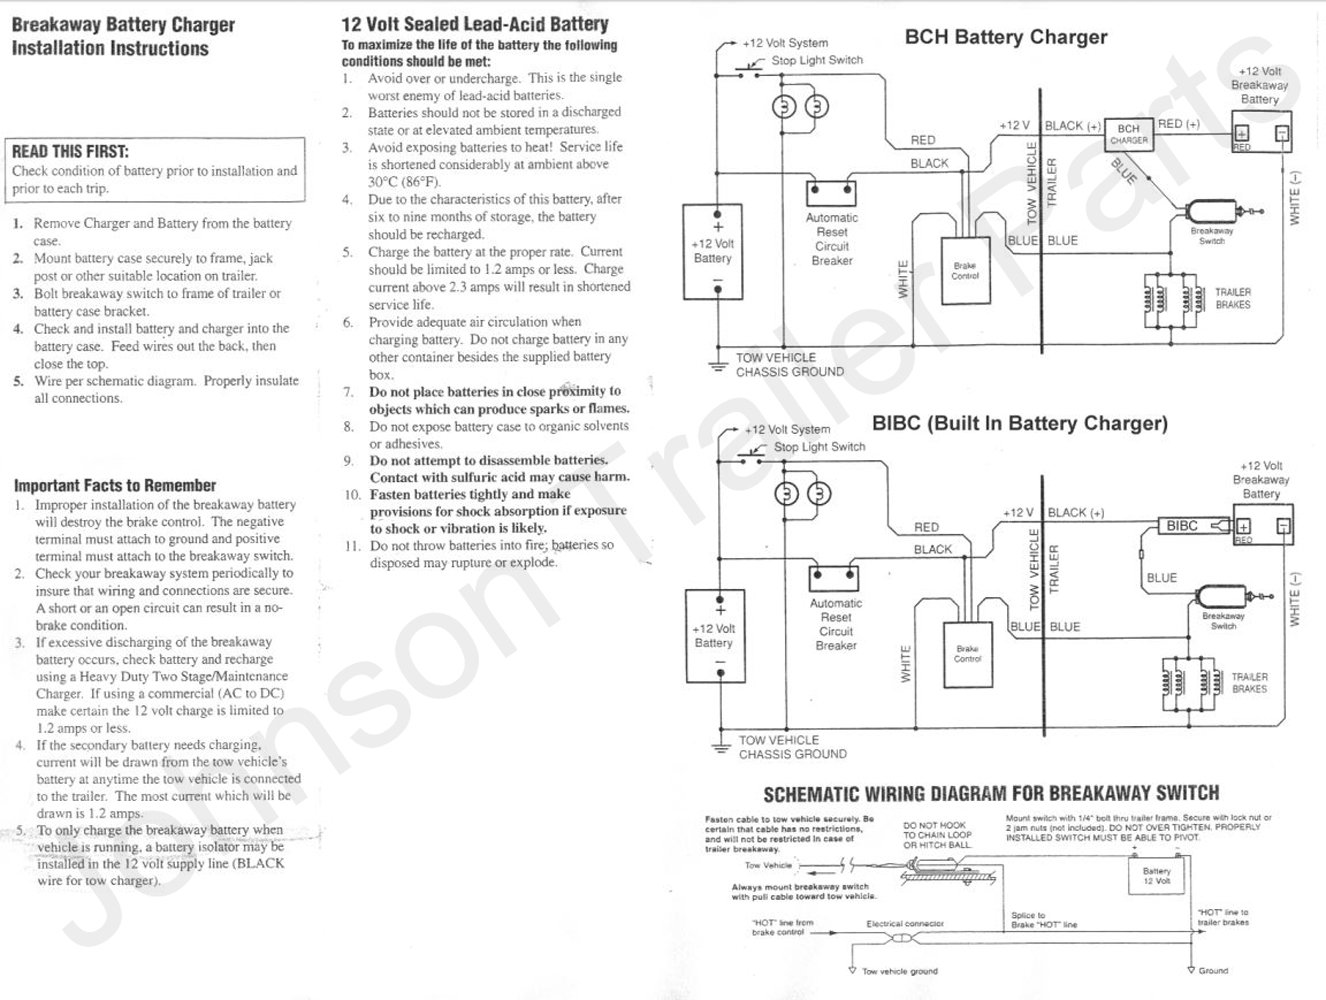 718PvzZr5ZL._SL1326_ amazon com trailer breakaway kit led readout breakaway switch tekonsha breakaway system wiring diagram at edmiracle.co